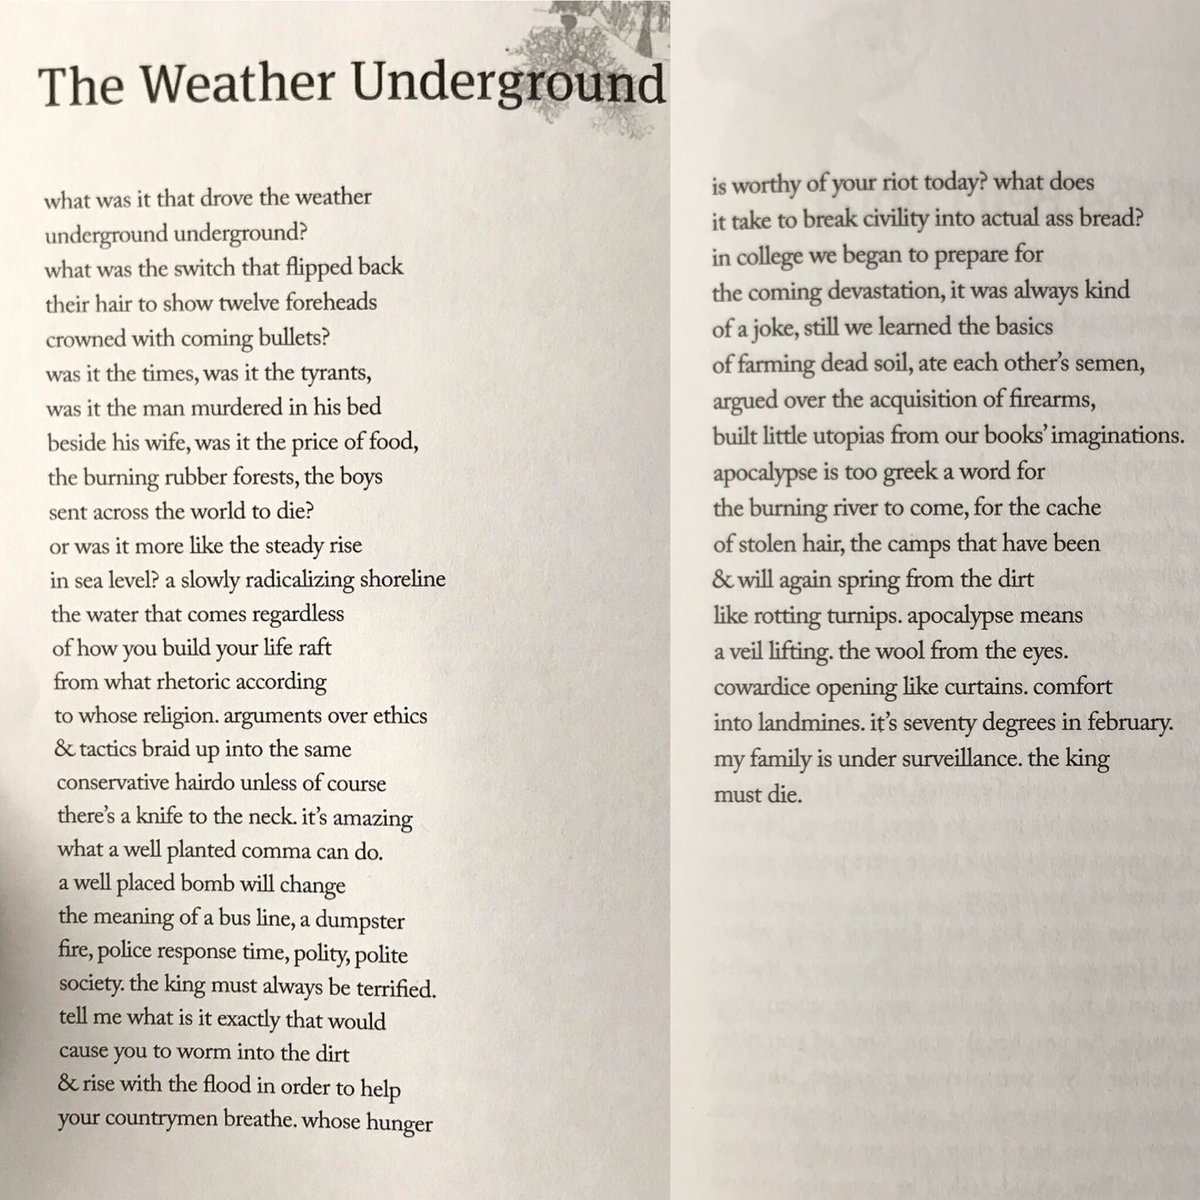 test Twitter Media - RT @samsax1: Here's my poem that won @Gulf_Coast poetry prize. Super honored. https://t.co/zx3YMDfOk6